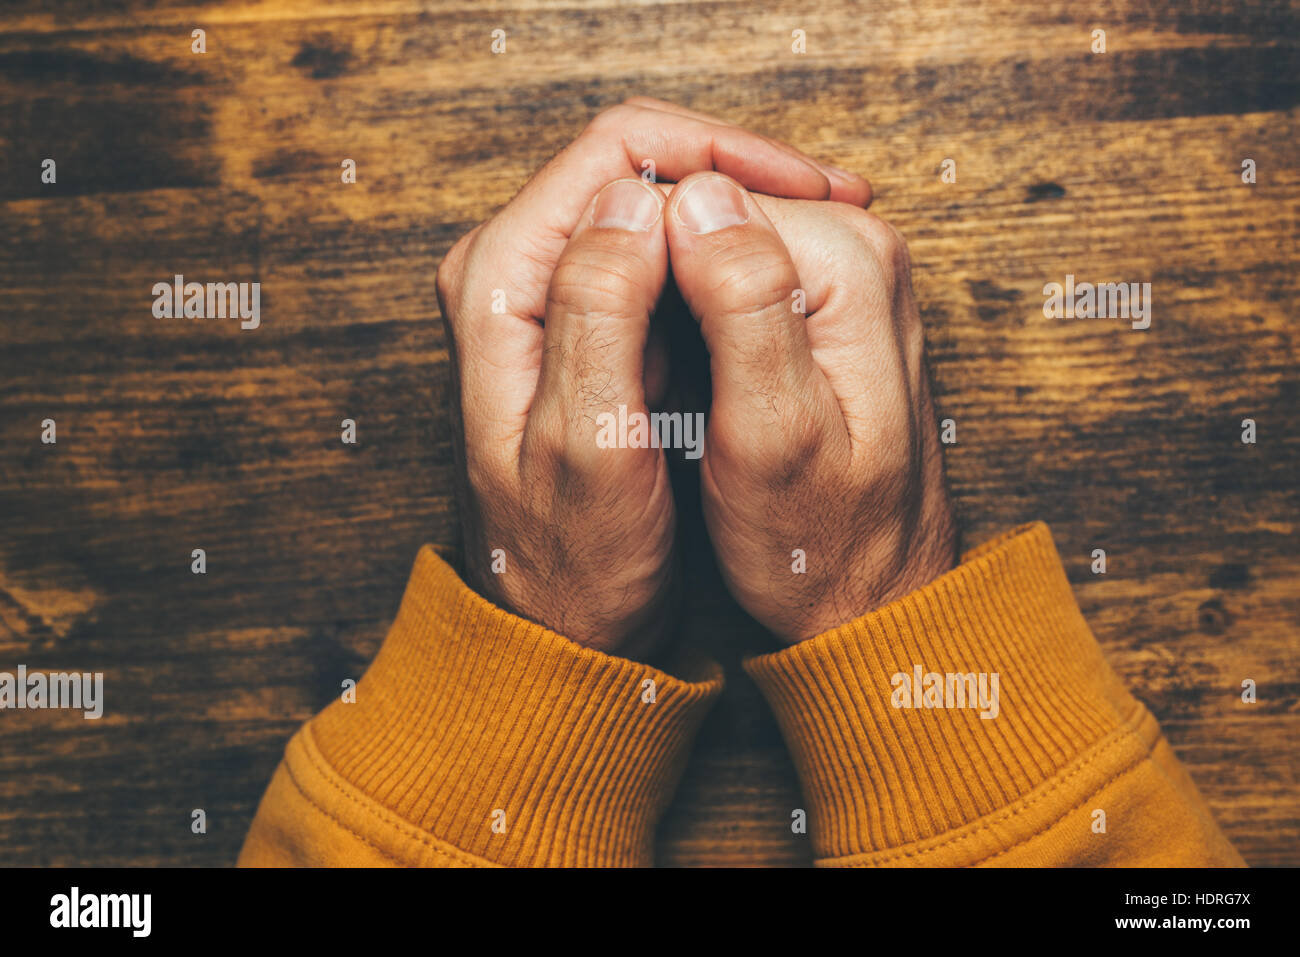 Top view of religious male crossed hands in prayer, christian religion practice - Stock Image